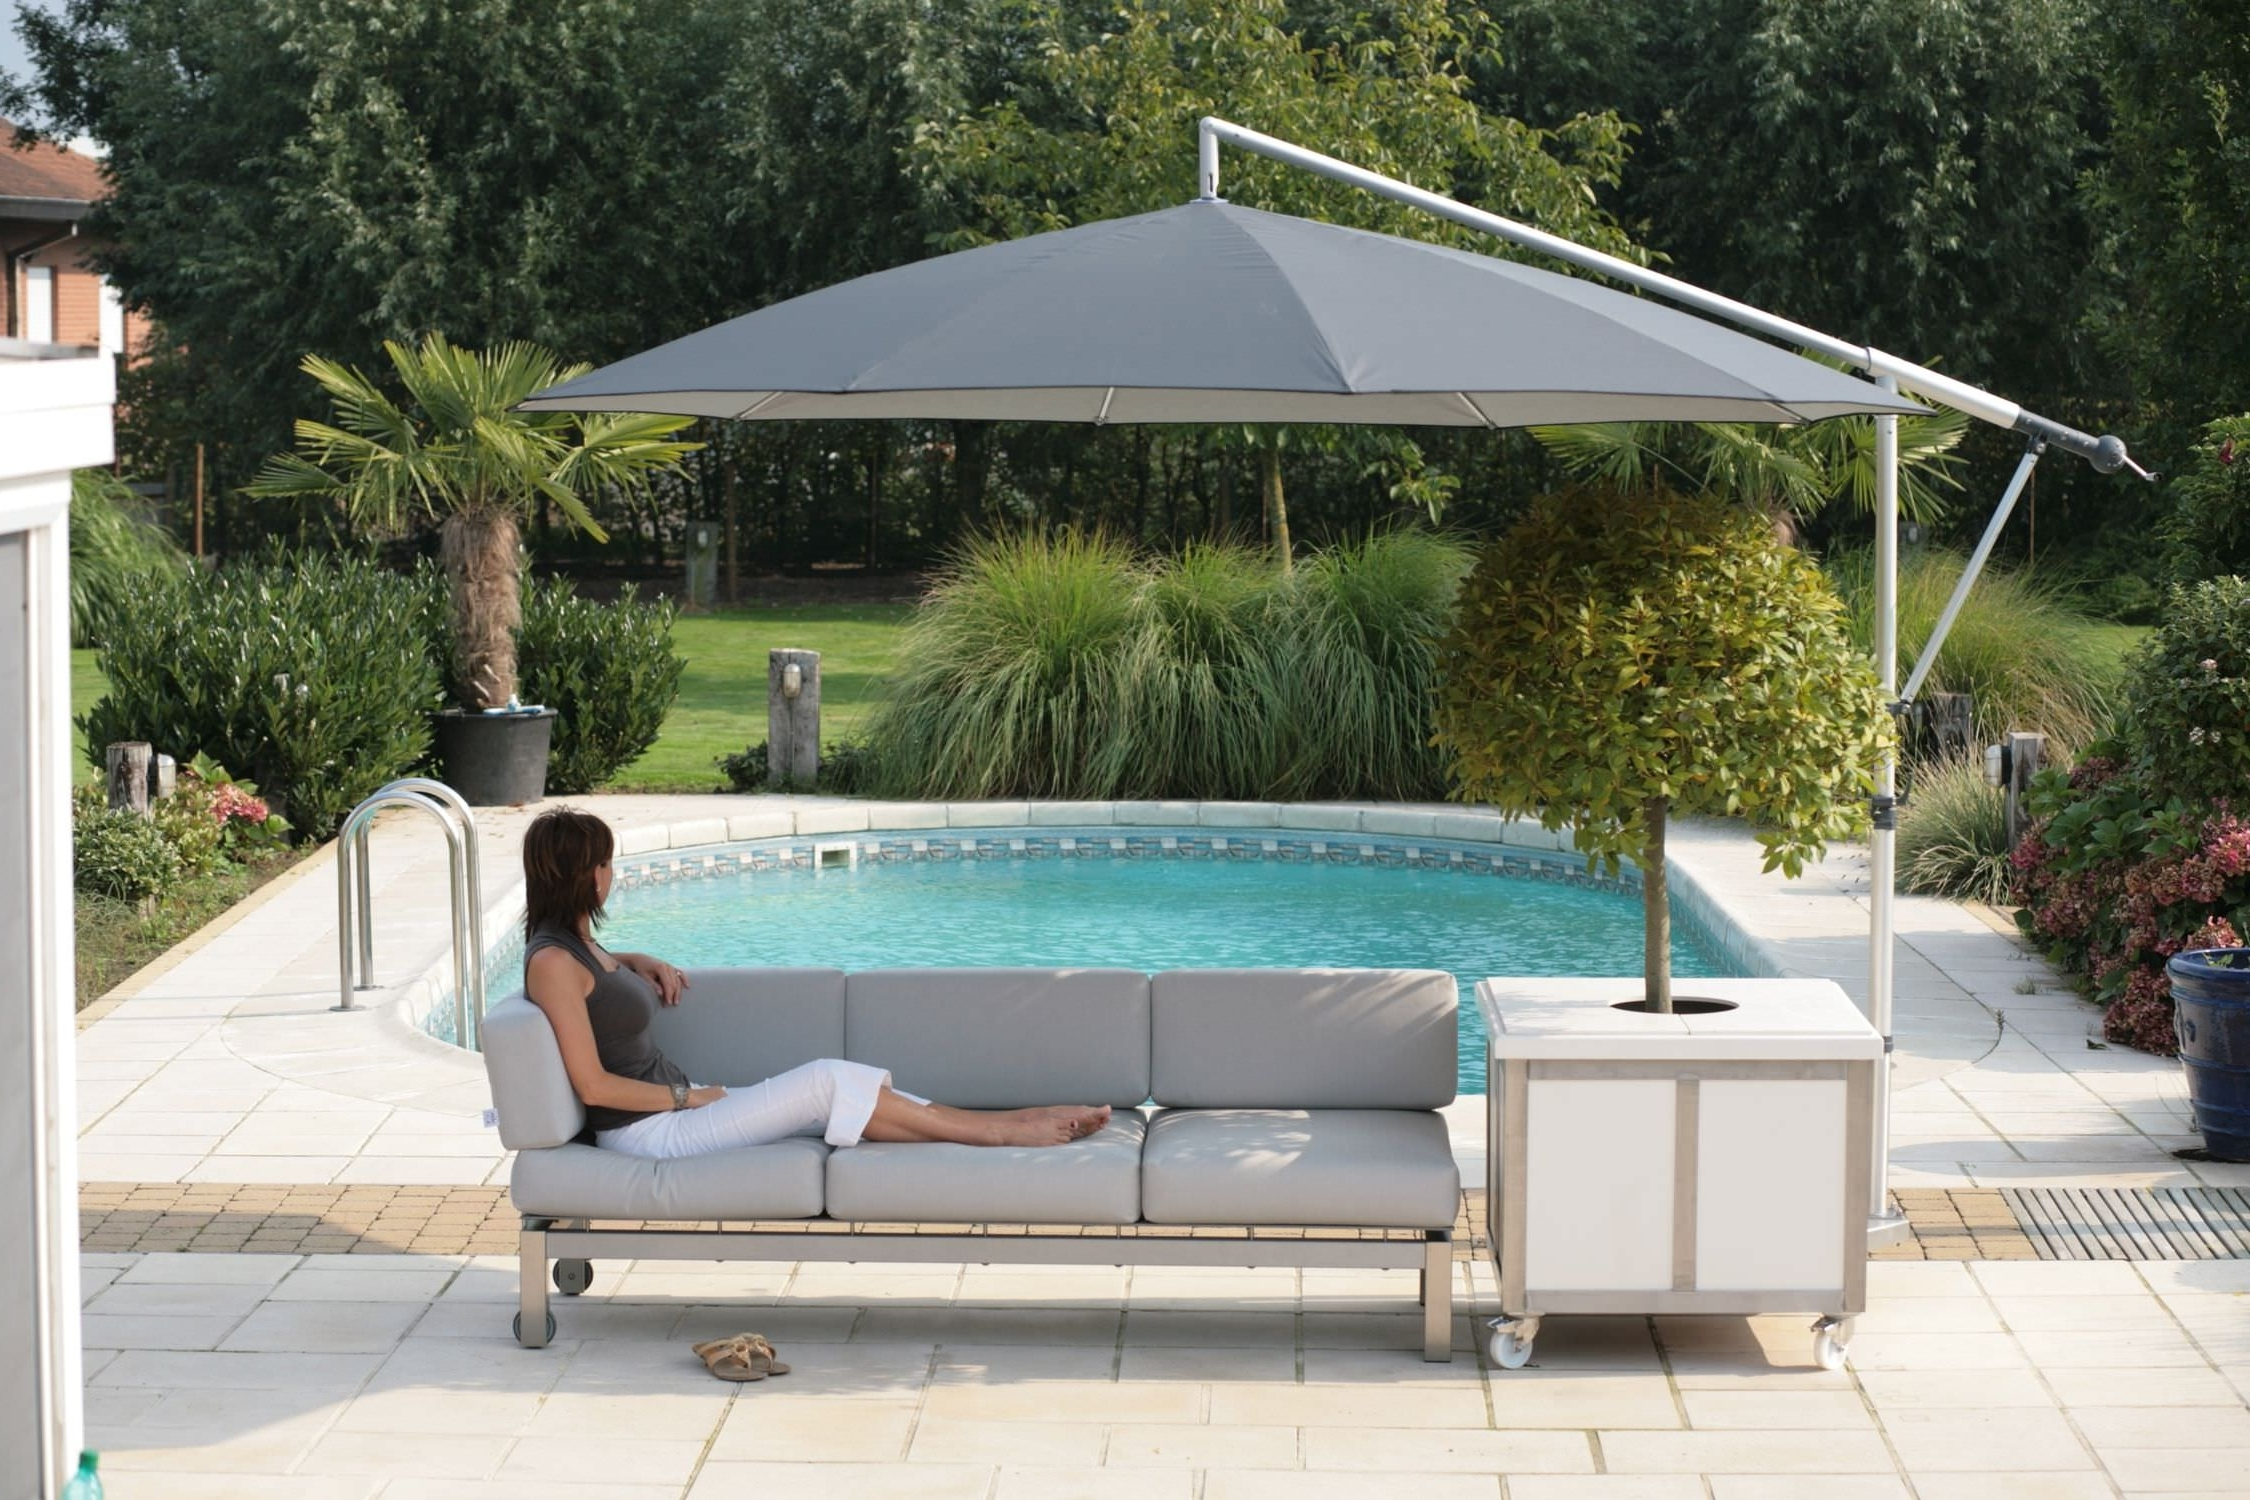 Outdoor Patio Umbrellas Pertaining To 2018 Offset Sun Umbrella – Best Outdoor Patio Umbrella (View 3 of 20)